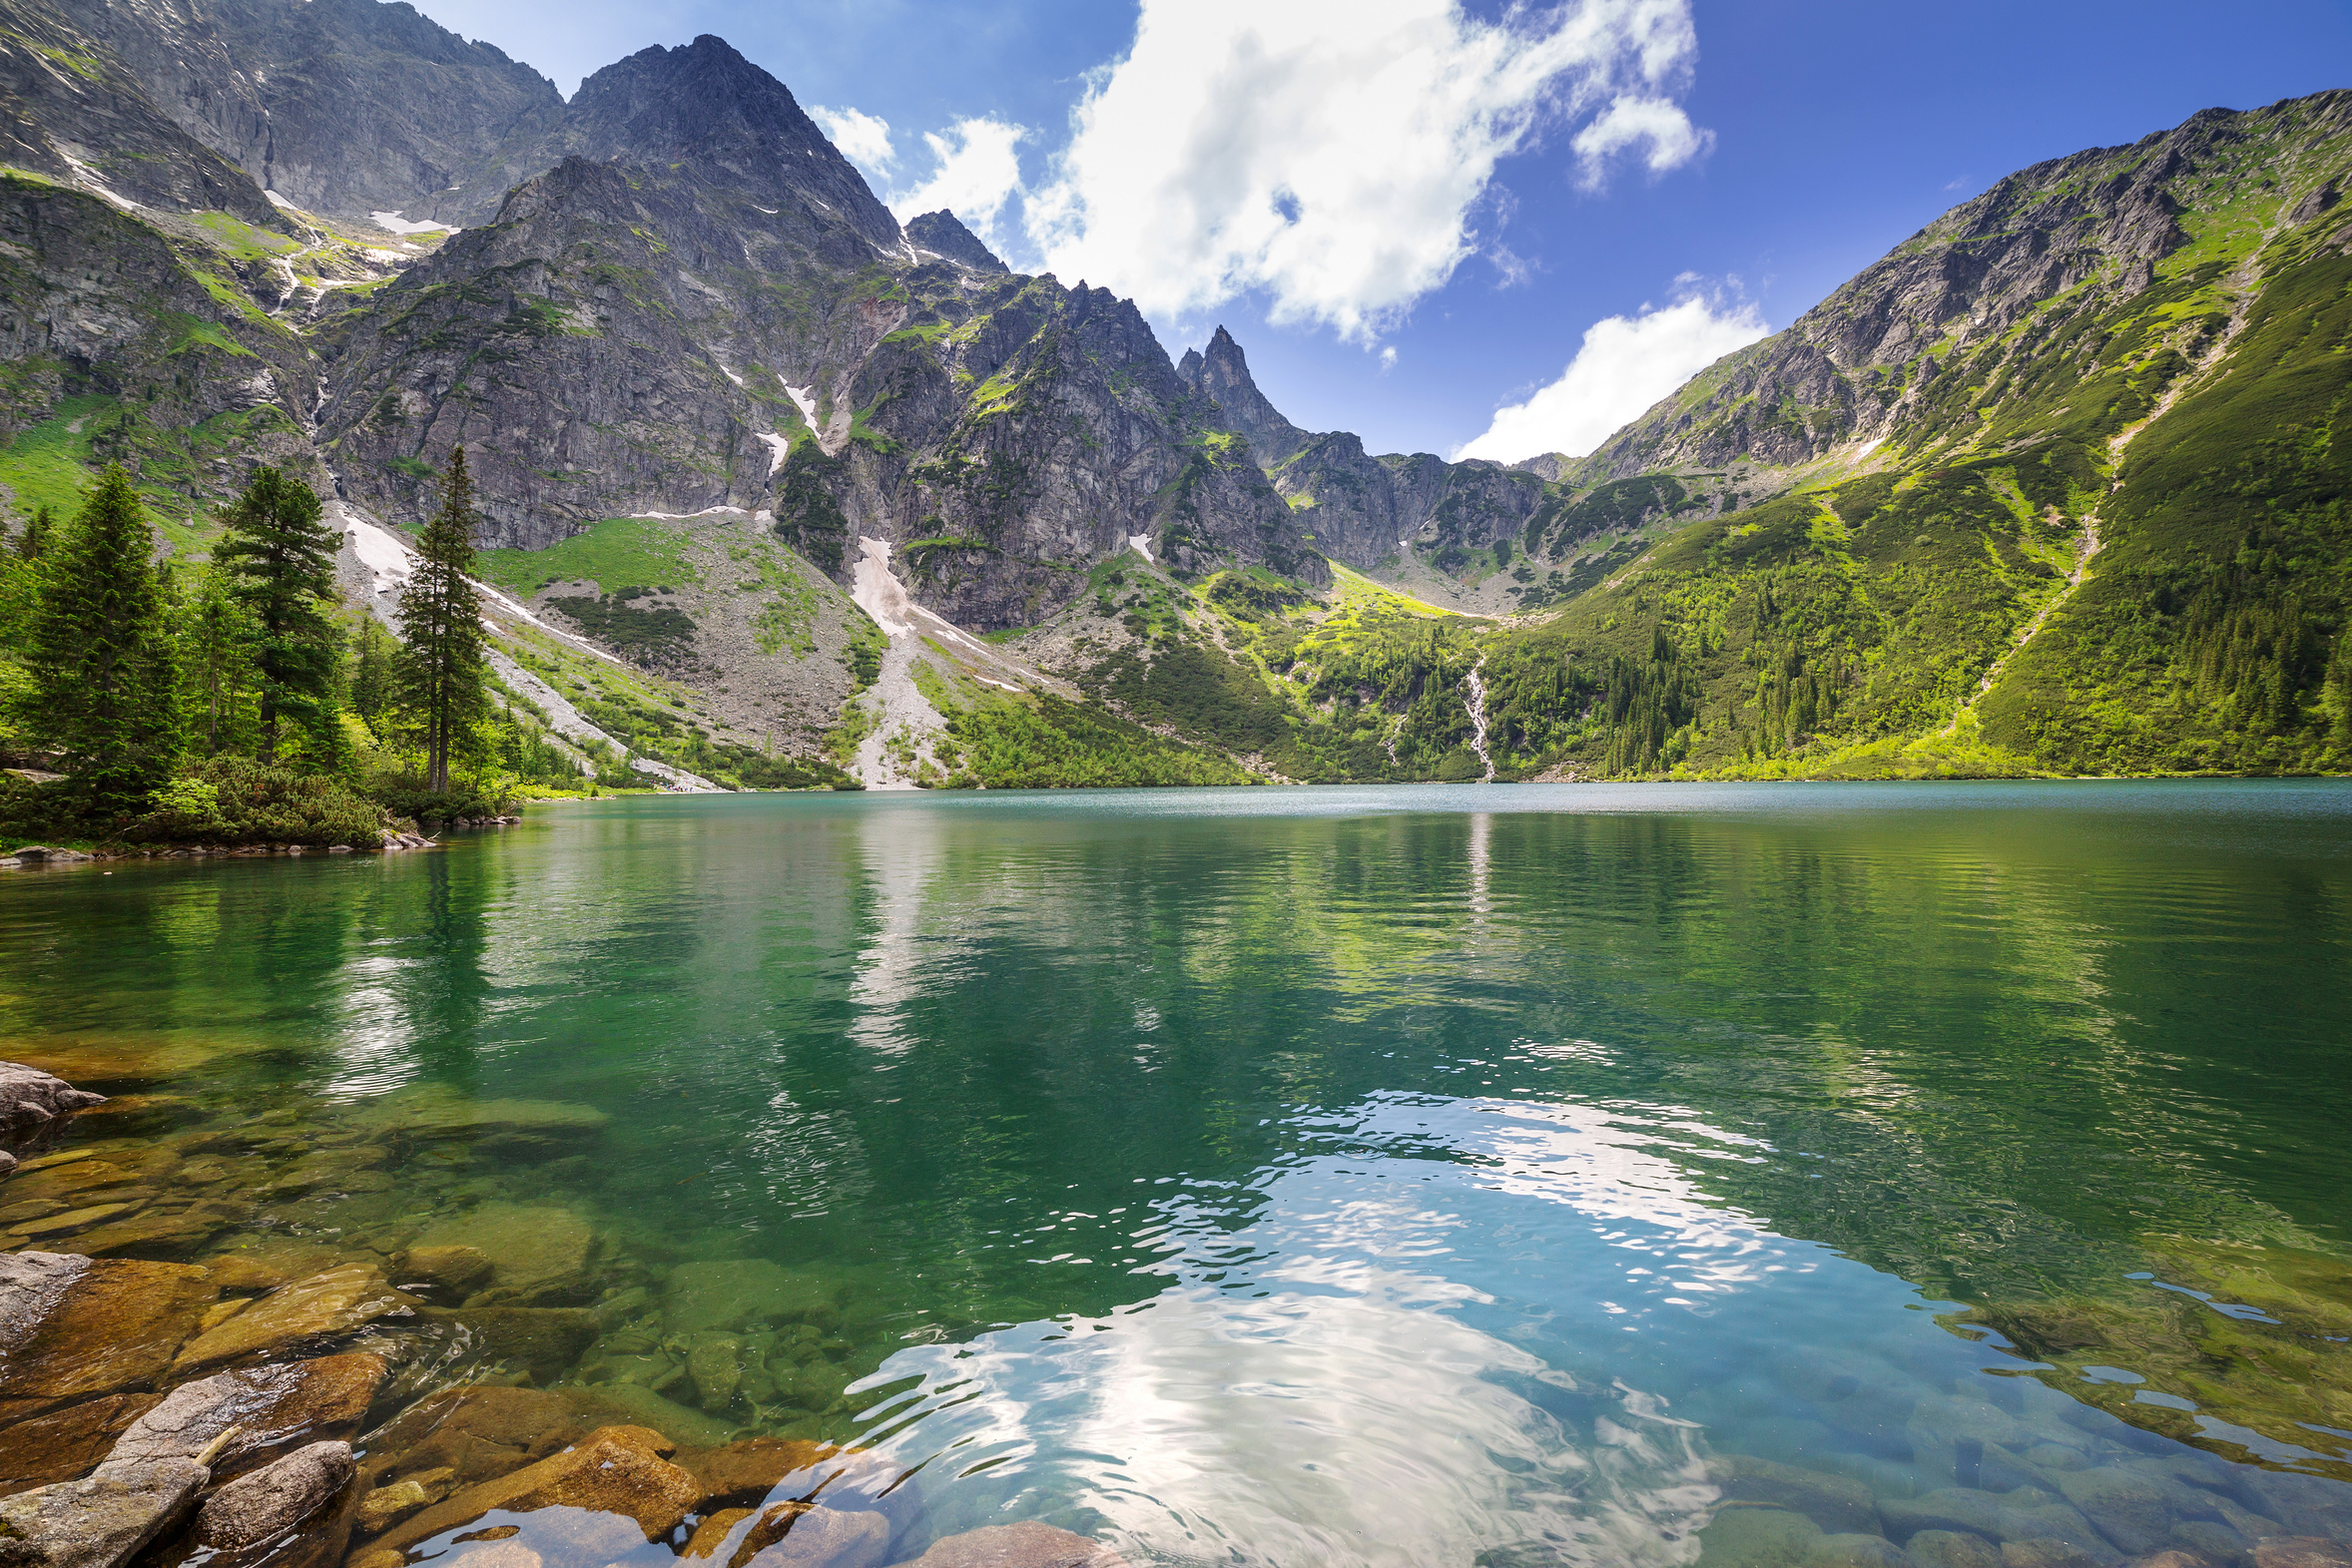 Morskie Oko Lake in Polish Tatras